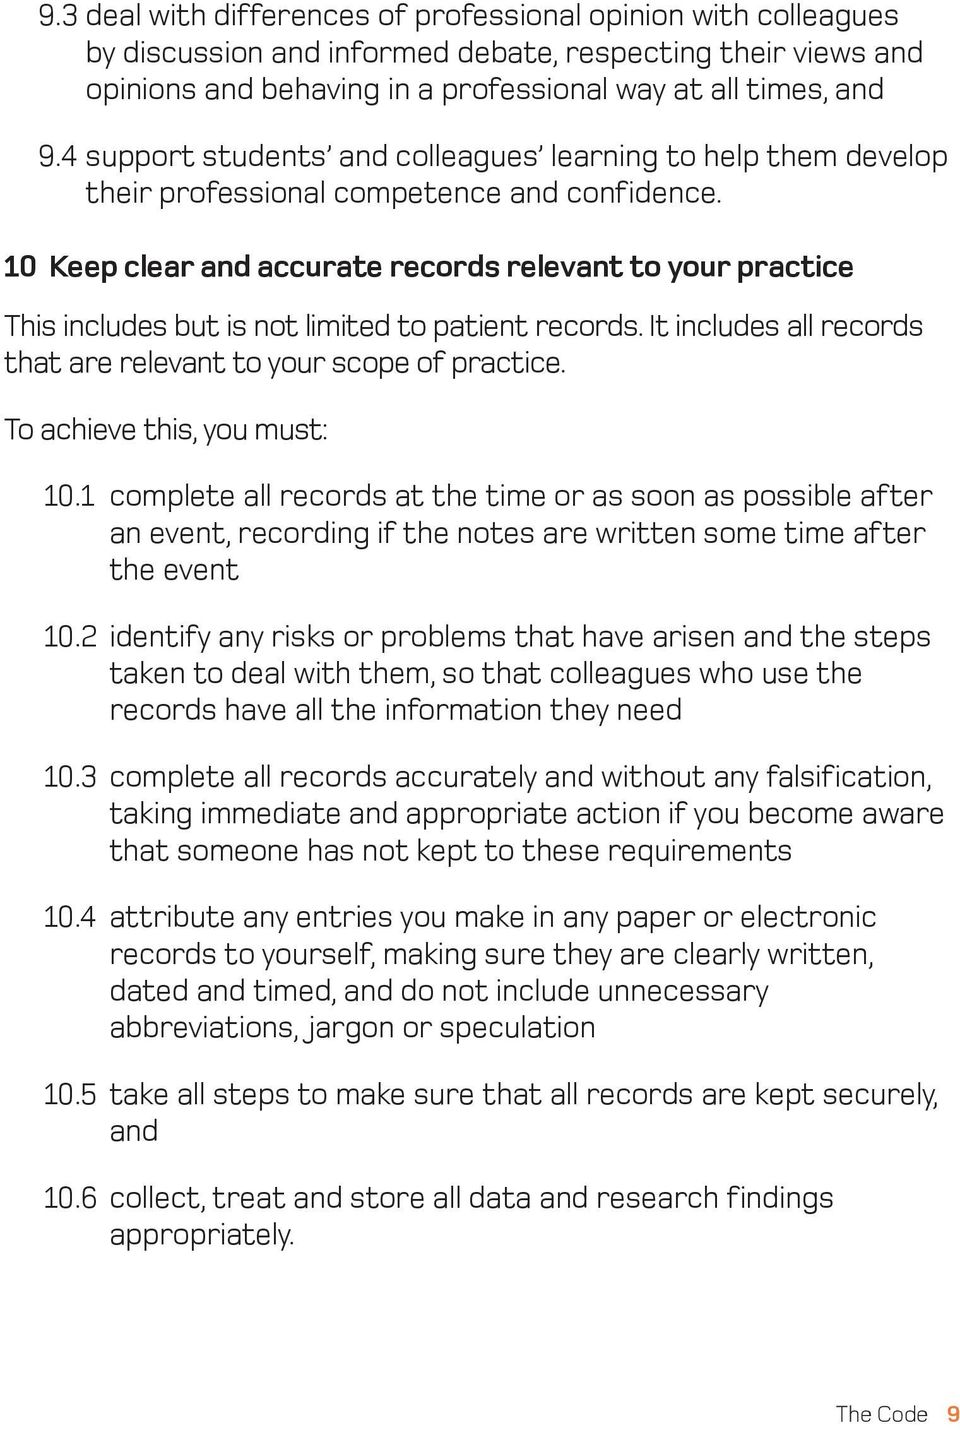 10 Keep clear and accurate records relevant to your practice This includes but is not limited to patient records. It includes all records that are relevant to your scope of practice. 10.